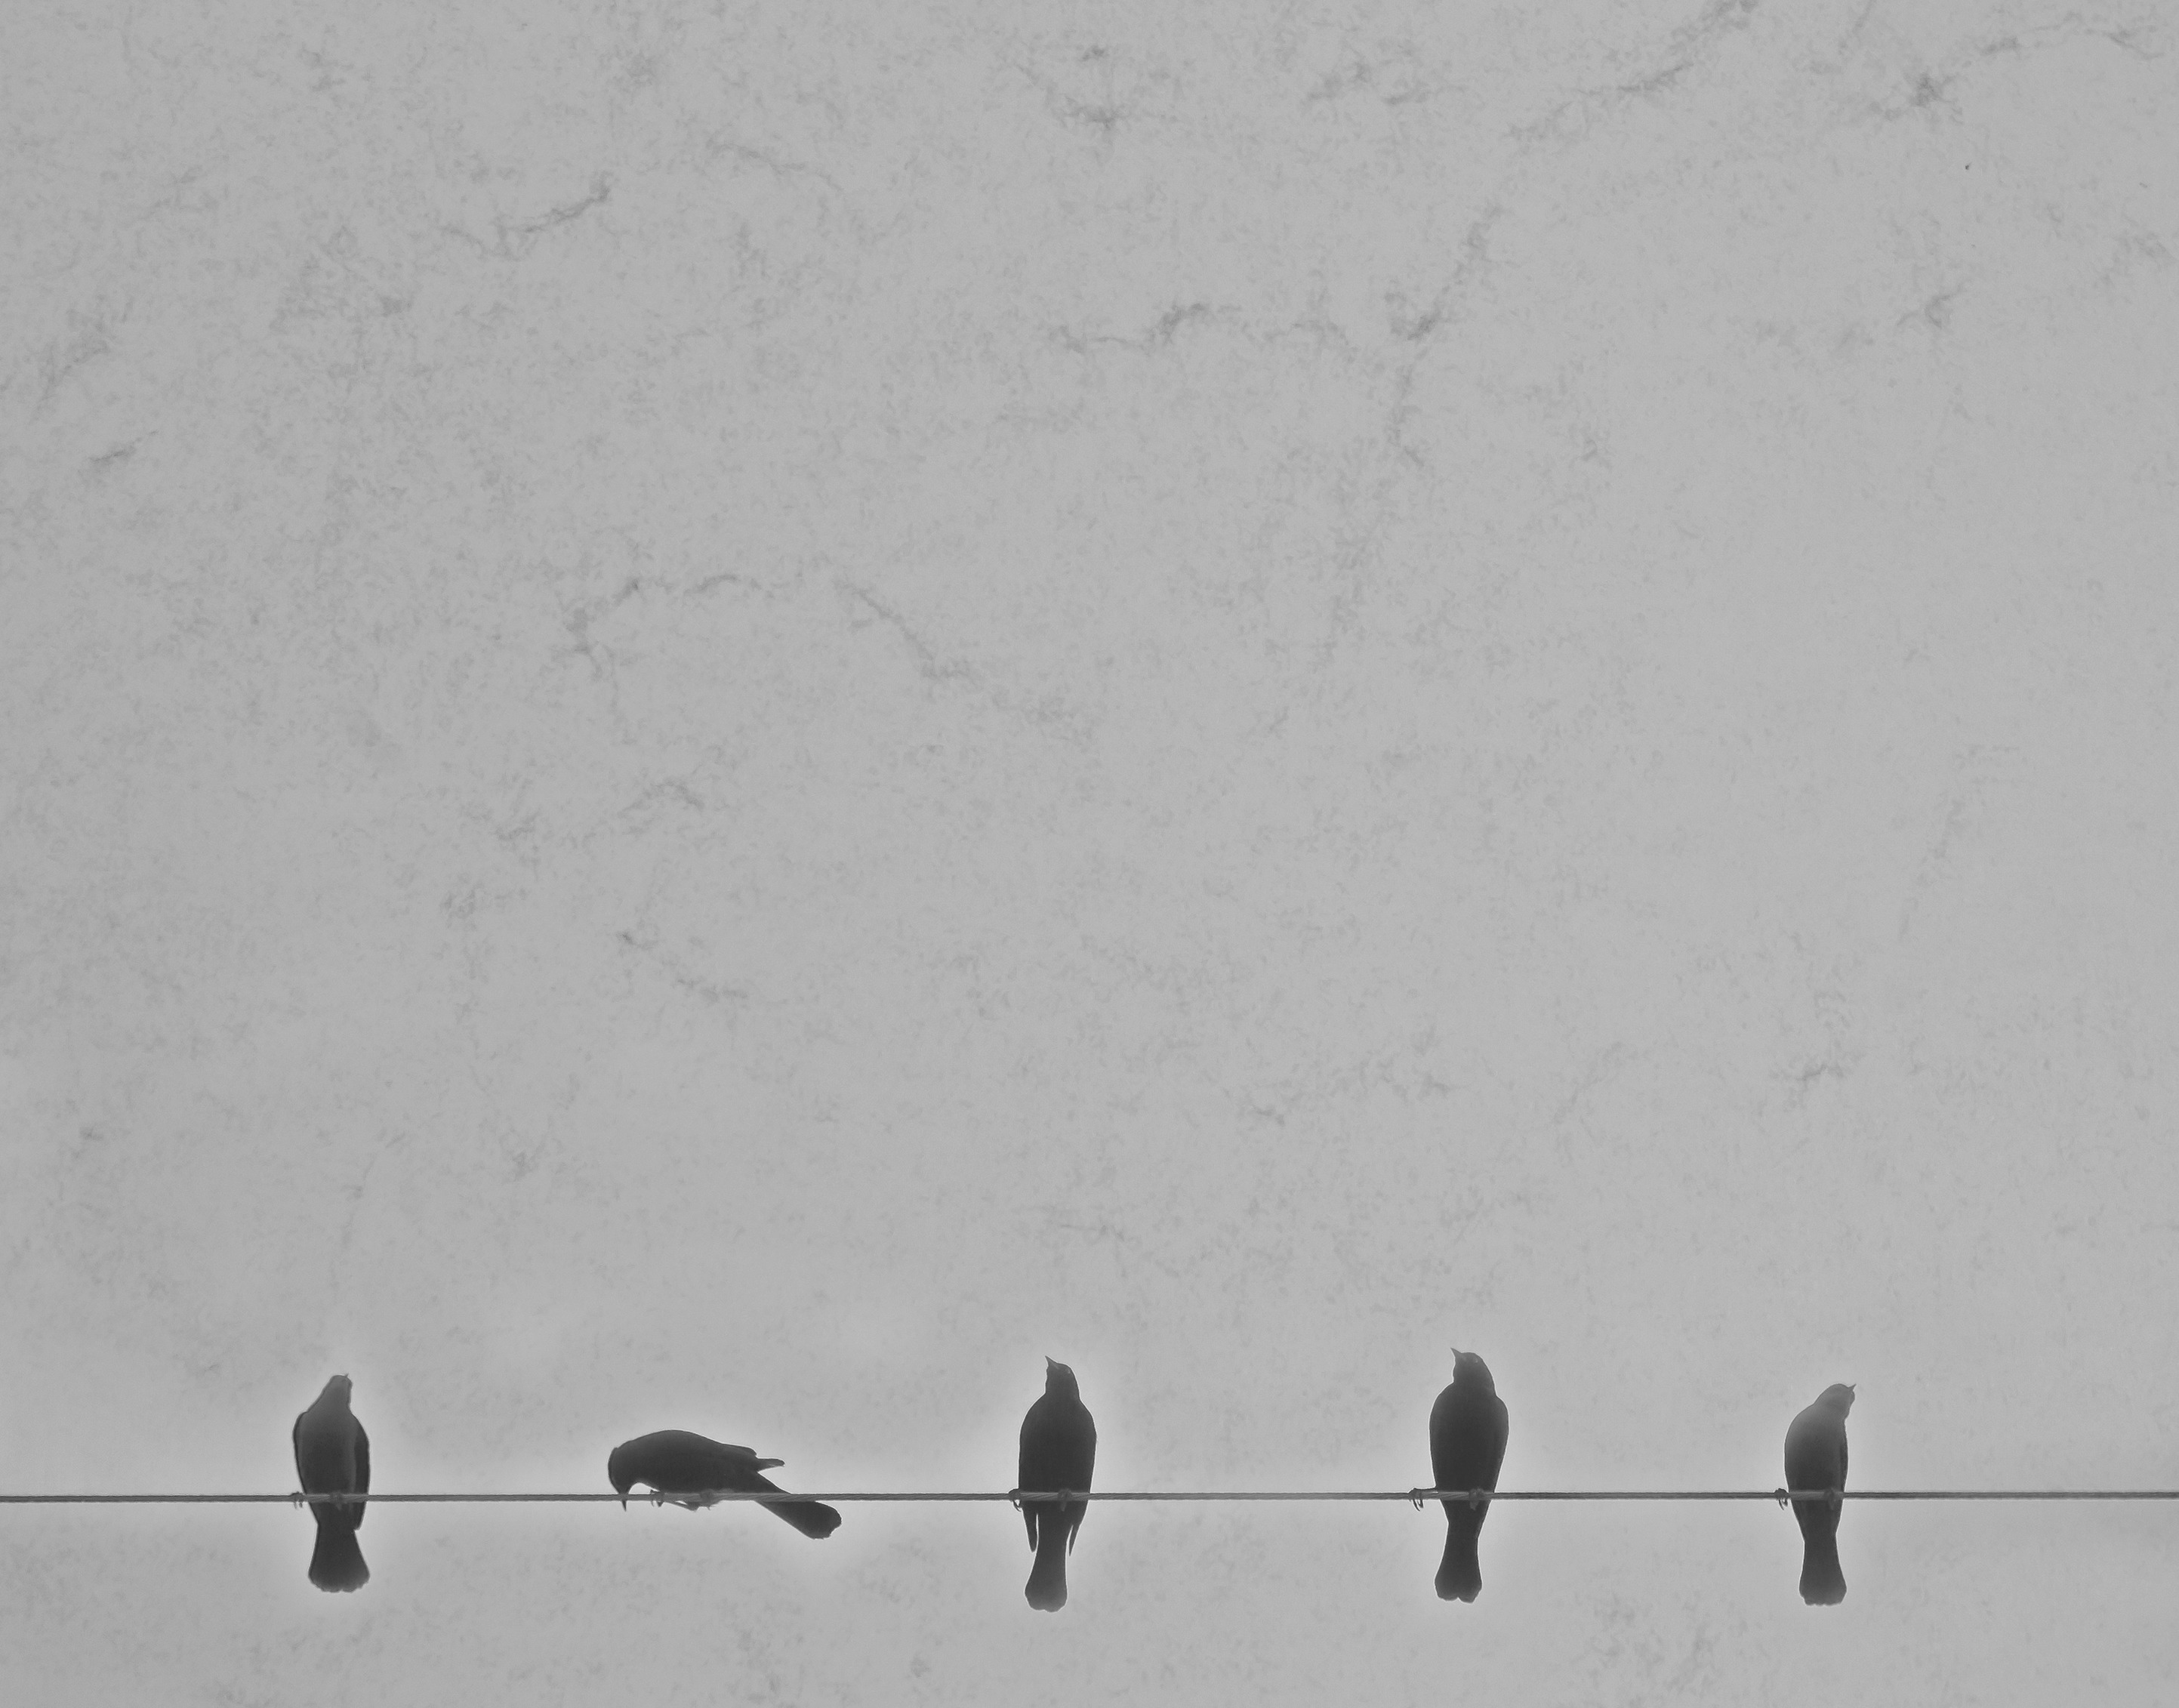 birds-on-wire-1113tm-pic-1017